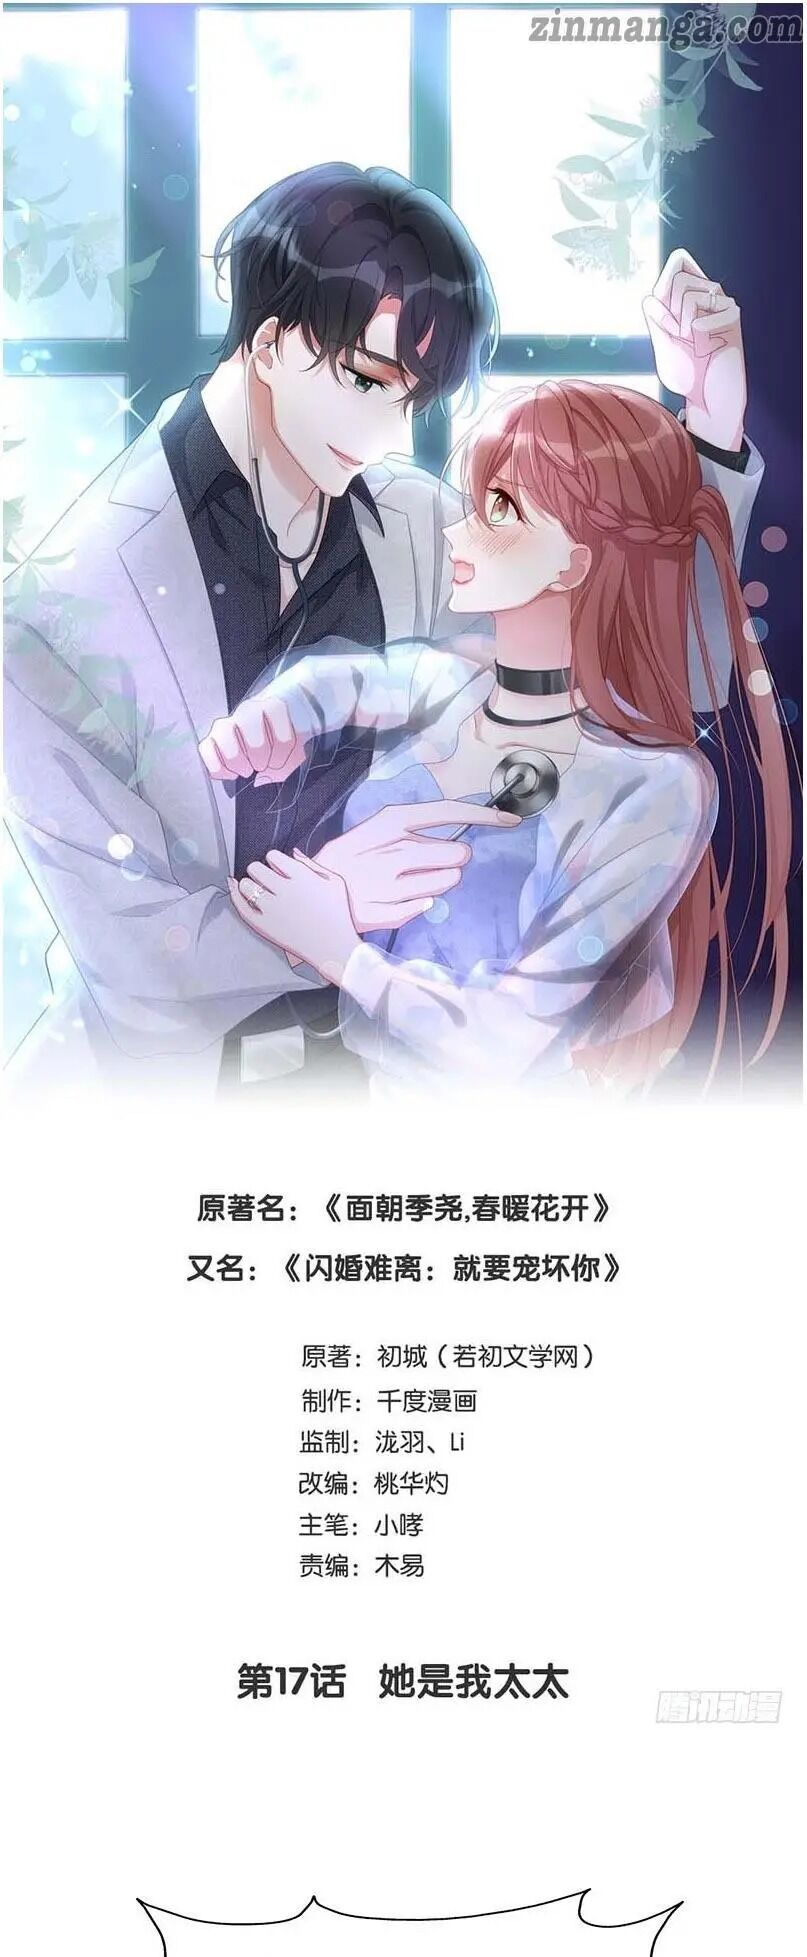 Spoil You - chapter 17 - #1